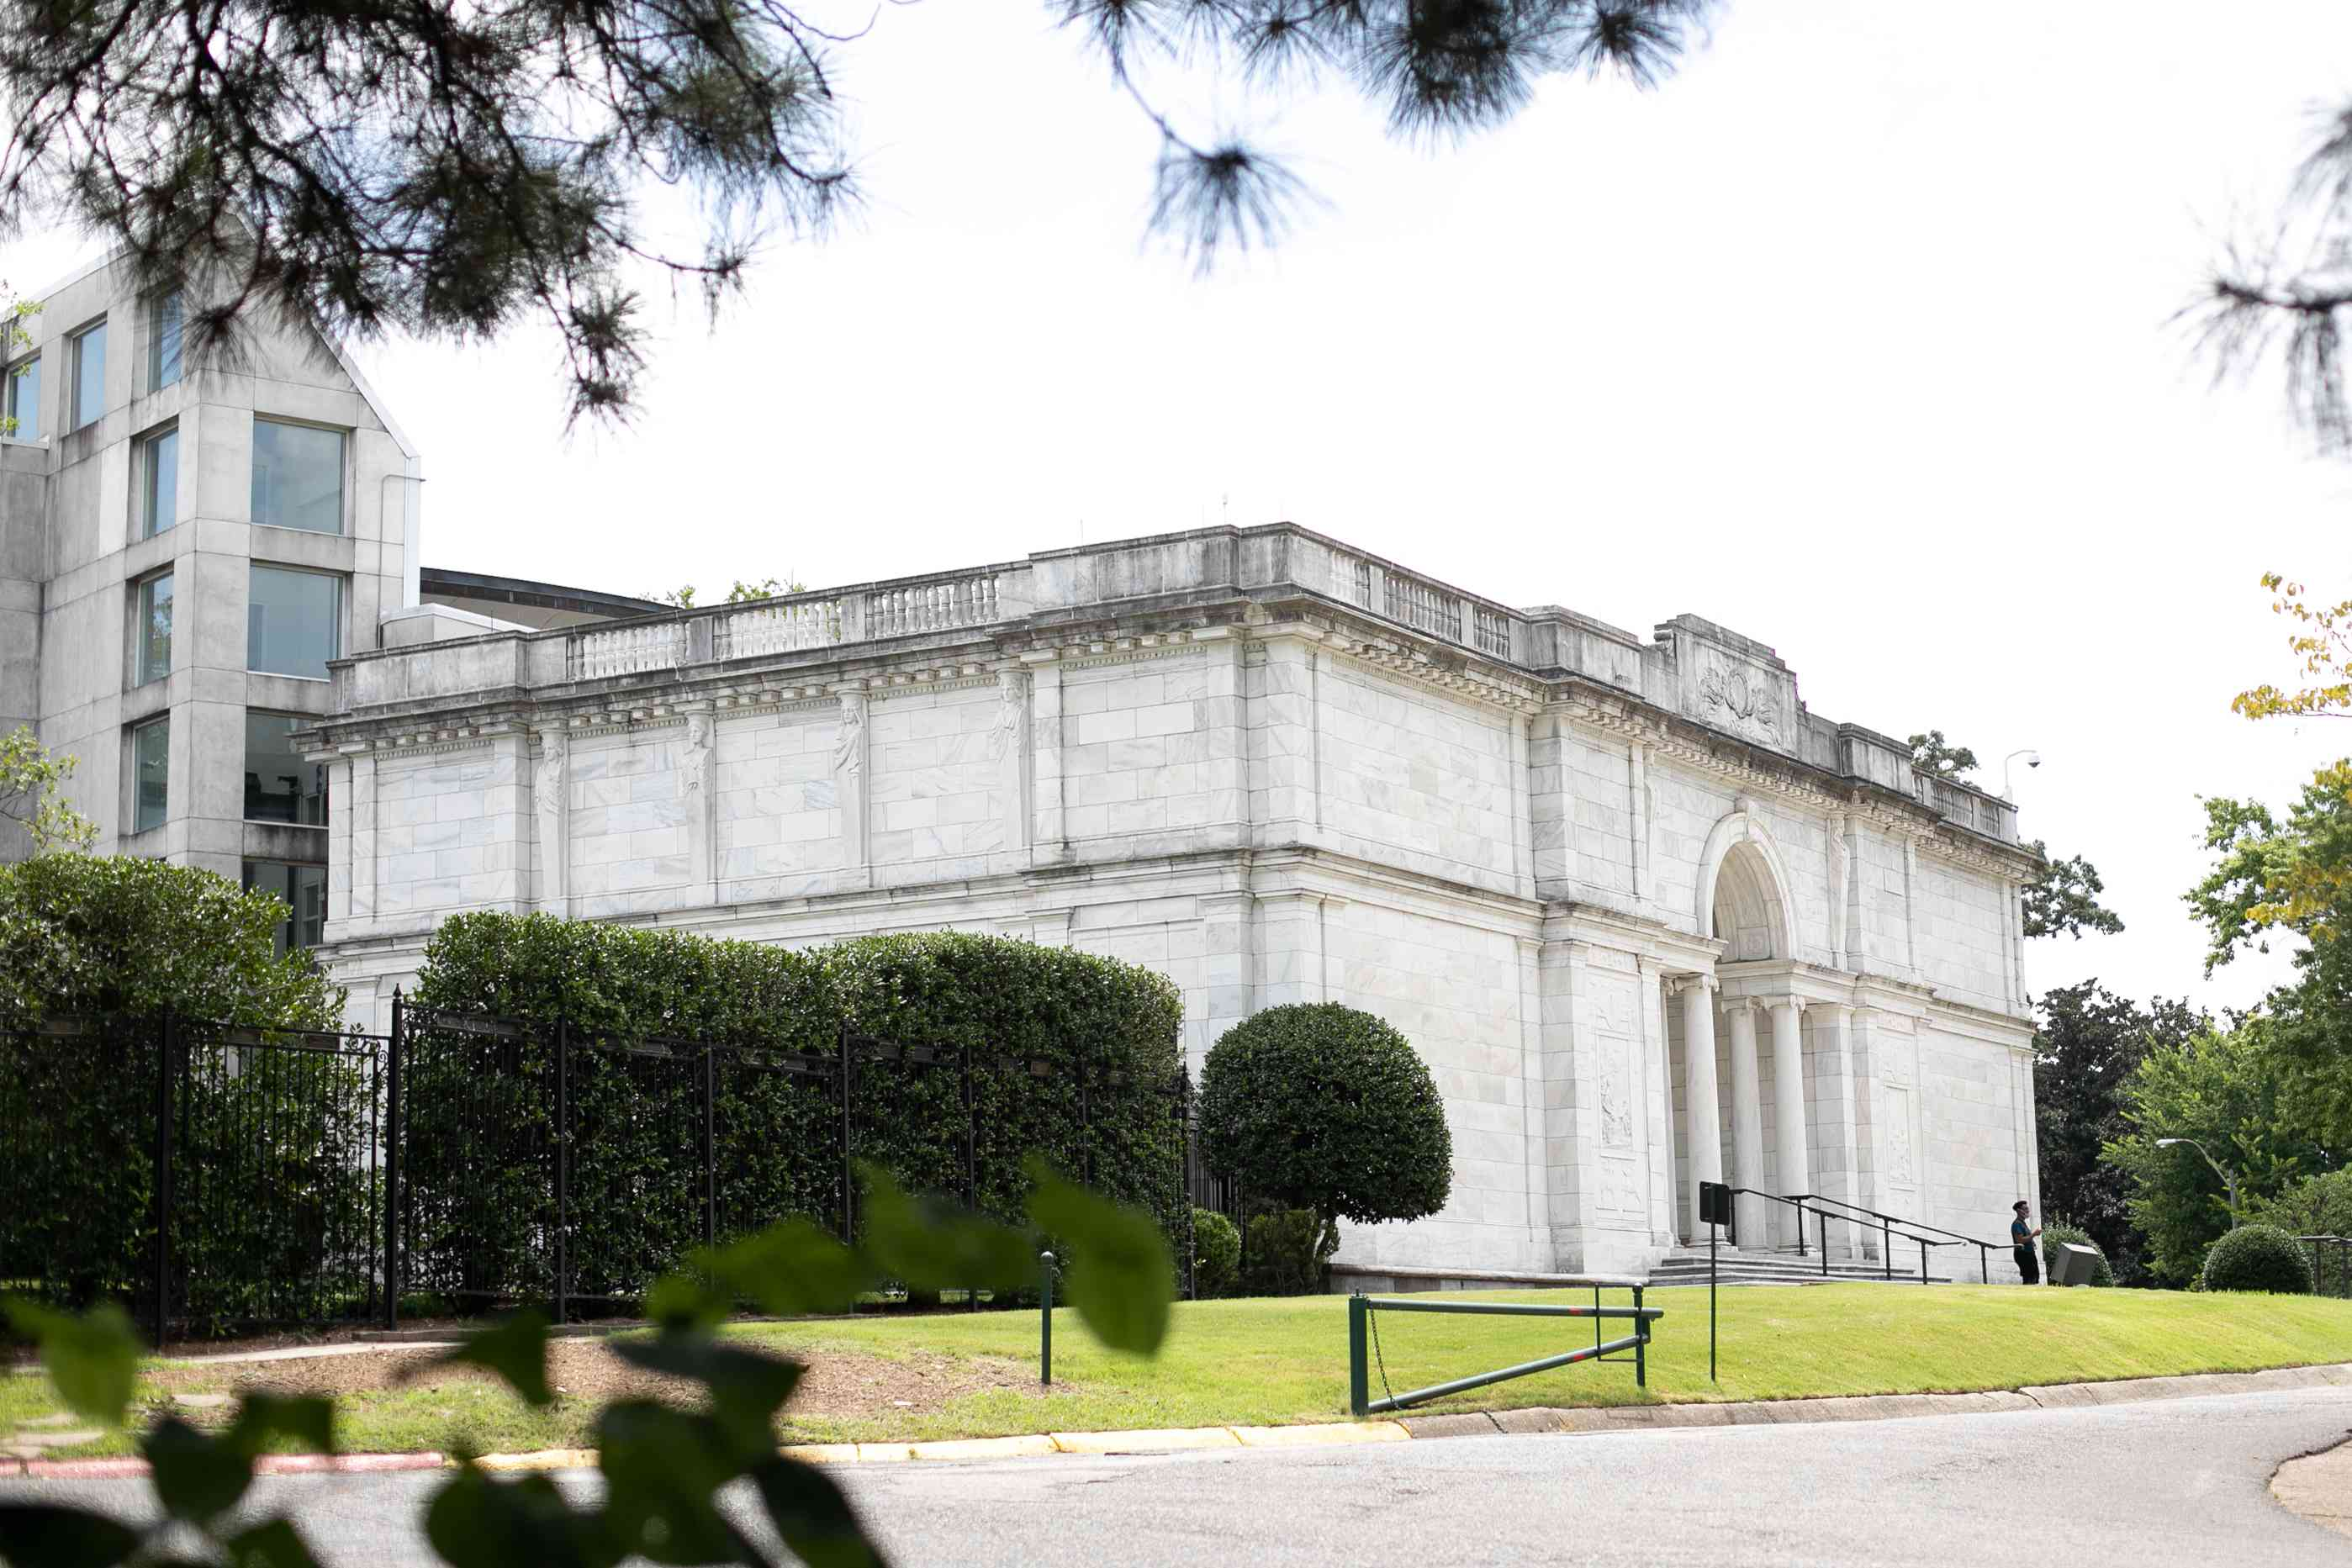 Memphis Brooks Museum of Art in Tennessee